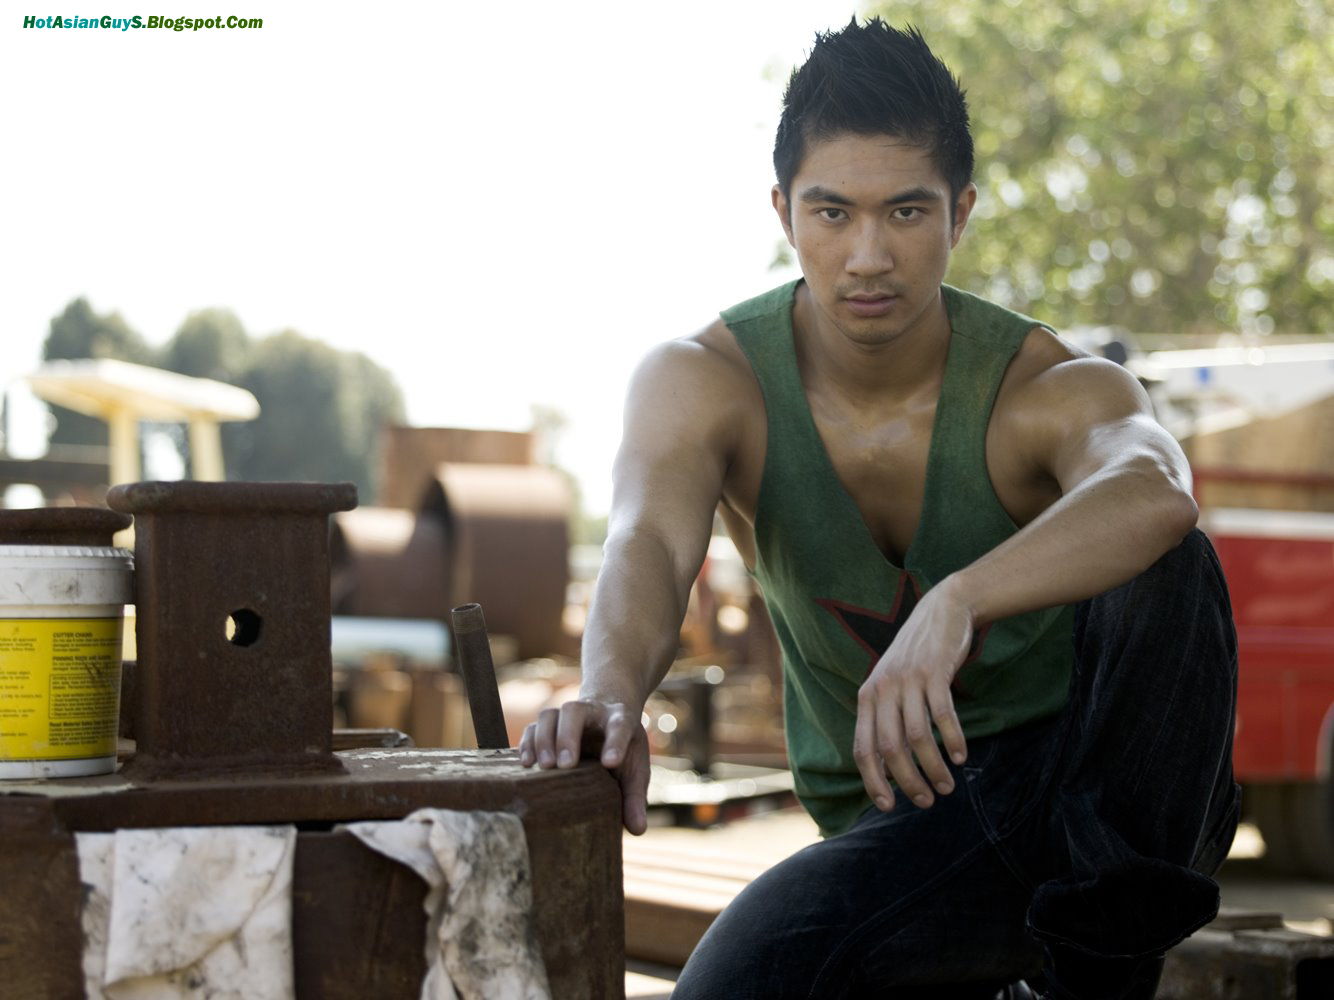 Ronnie Woo - A Real Hot Asian Guy  Hot Asian Guys - Male -1175